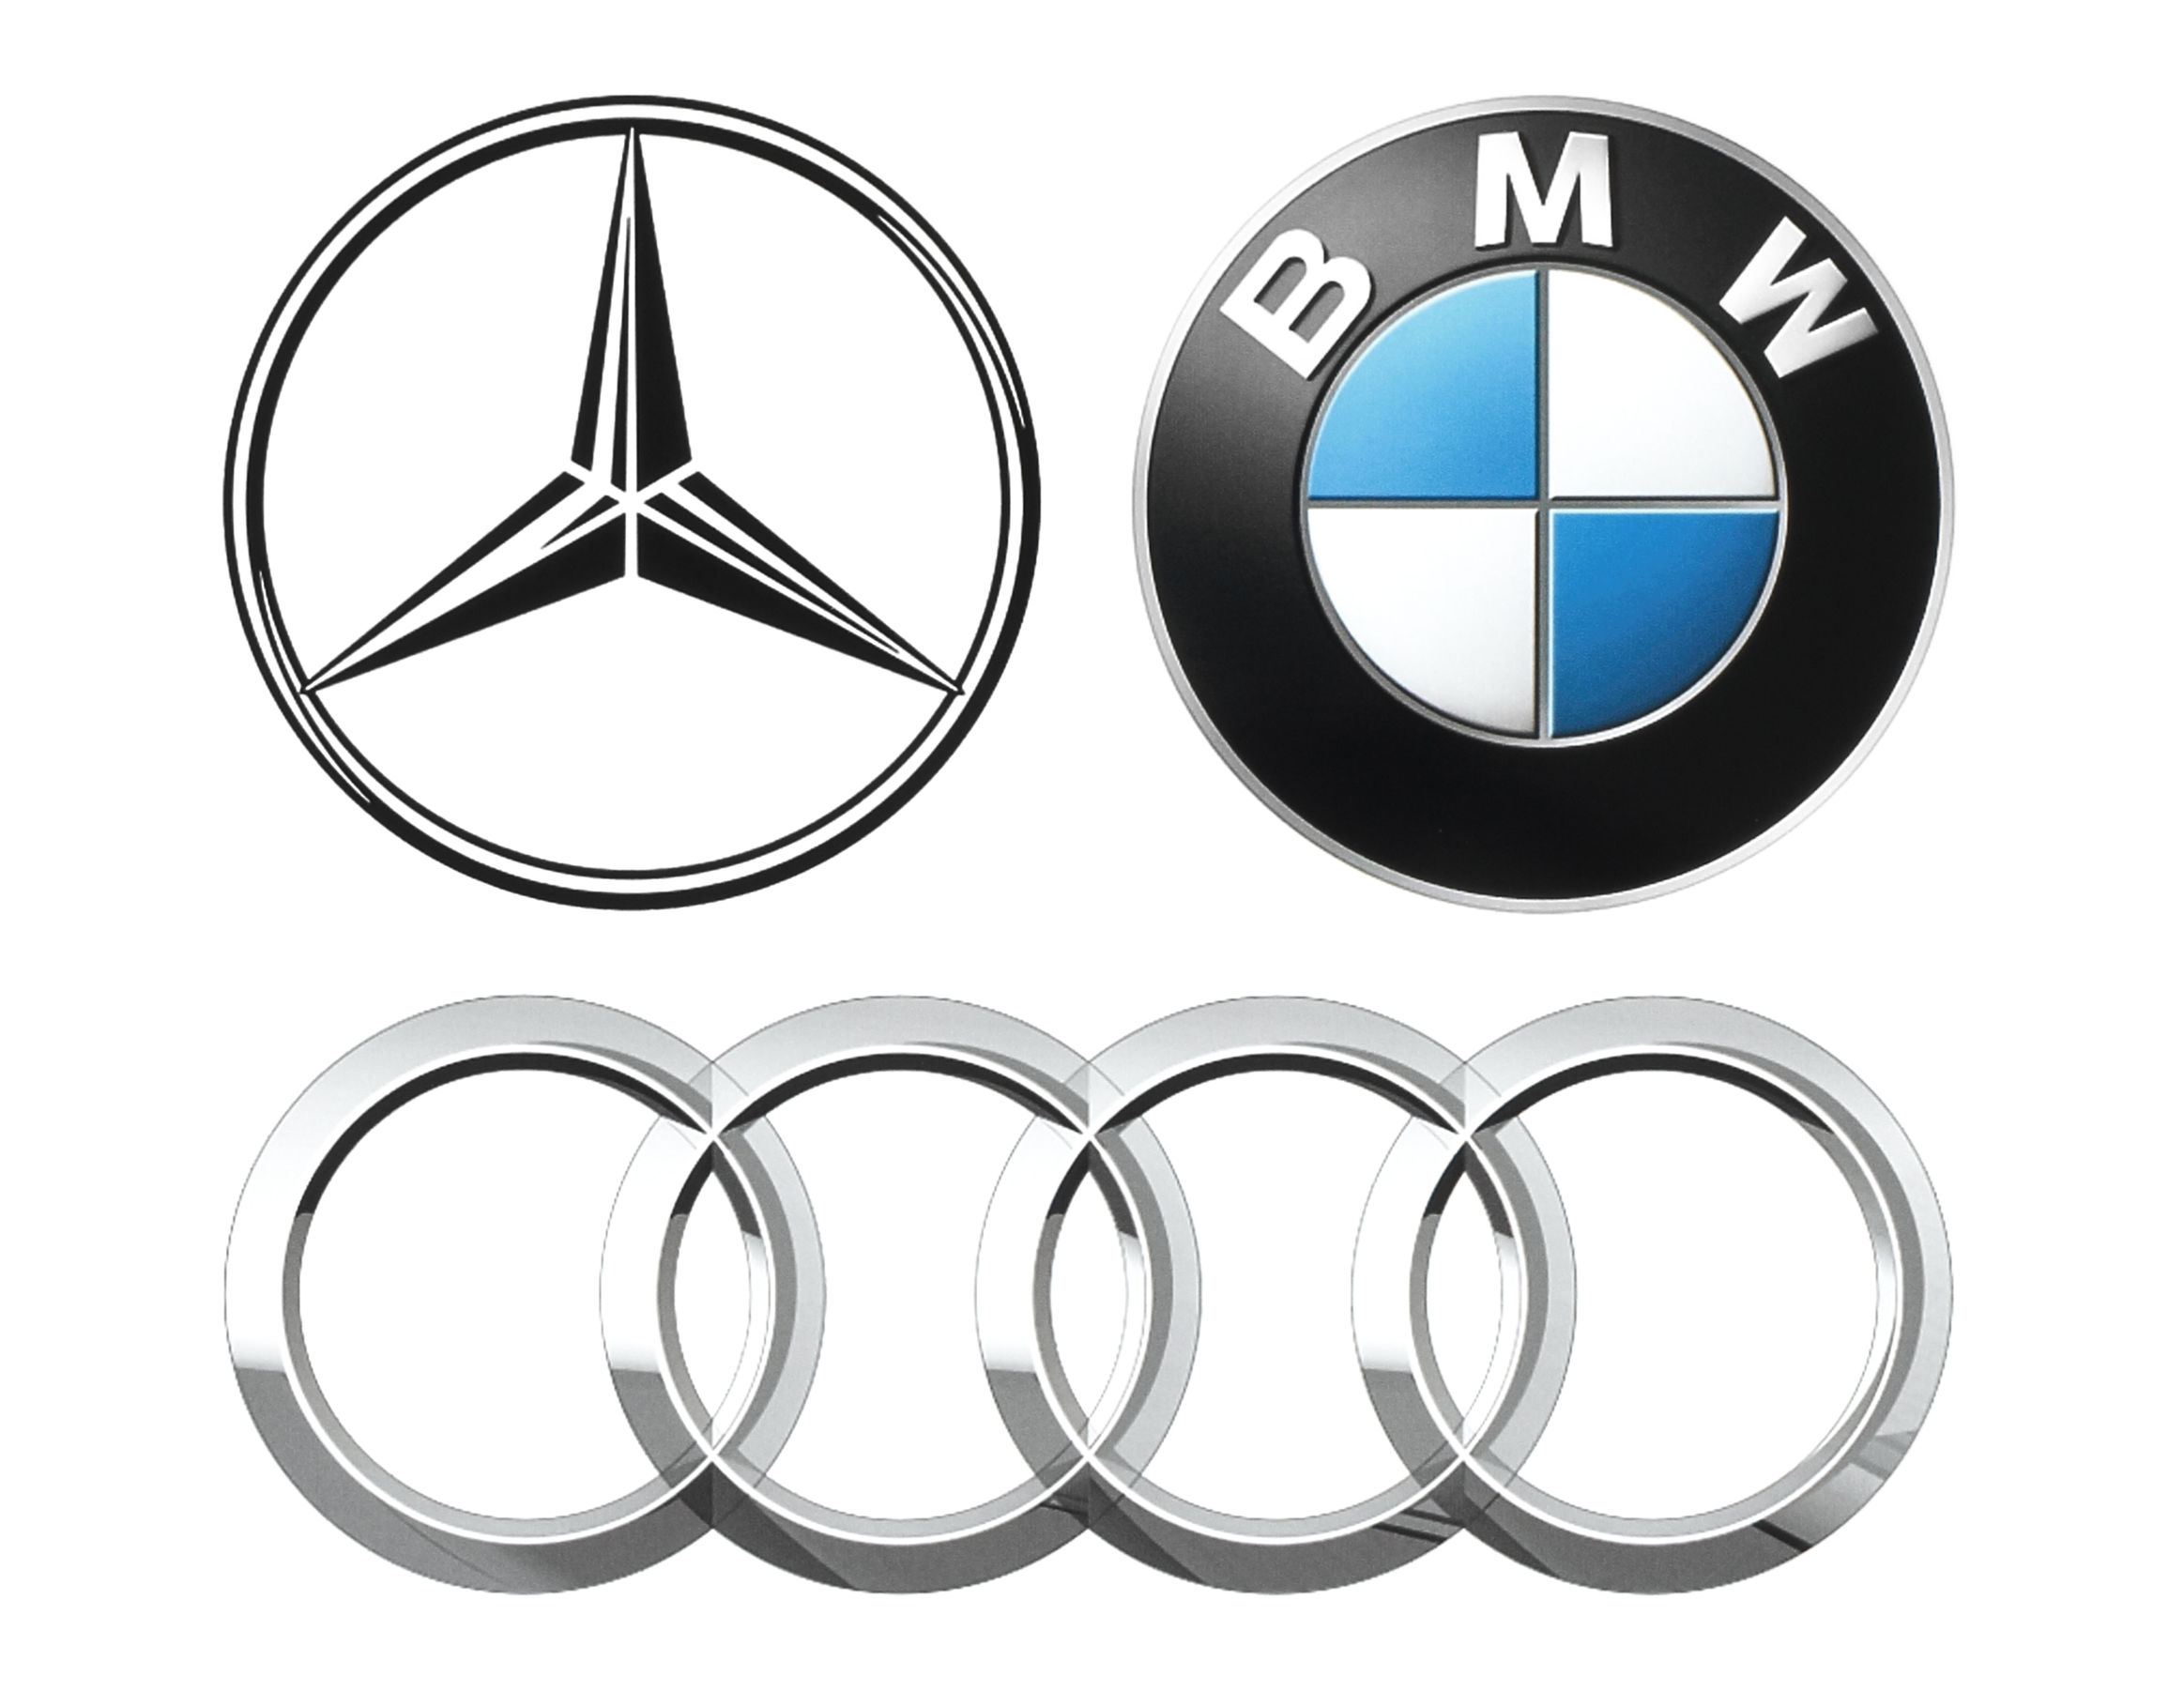 Collection of popular German car logos: Mercedes, BMW and Audi